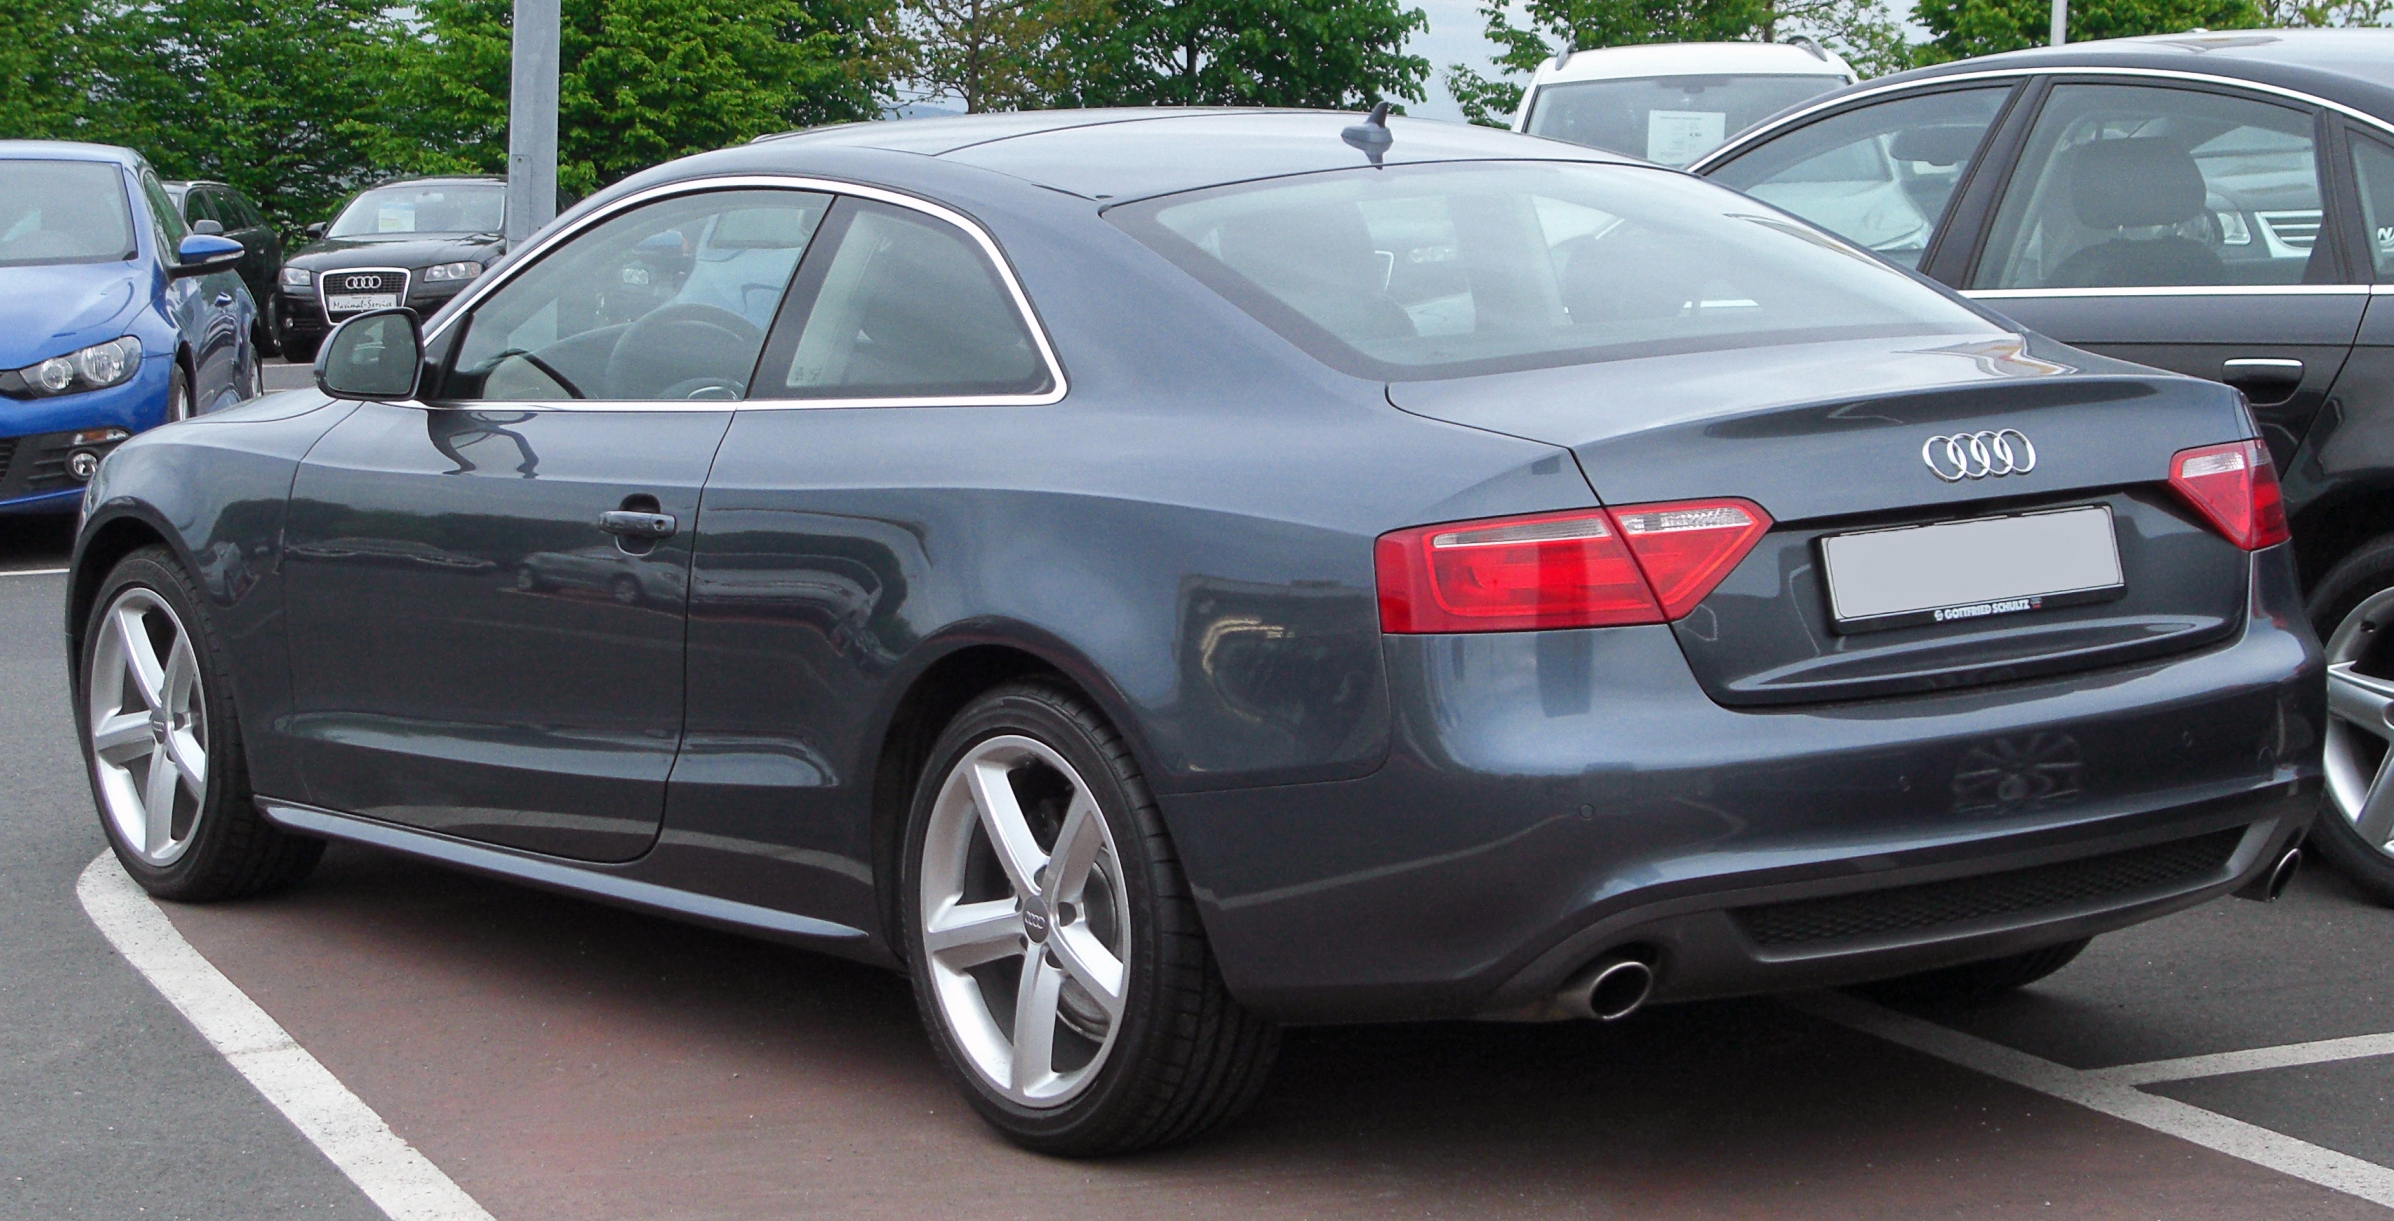 file audi a5 coup 3 2 fsi quattro s line rear wikimedia commons. Black Bedroom Furniture Sets. Home Design Ideas